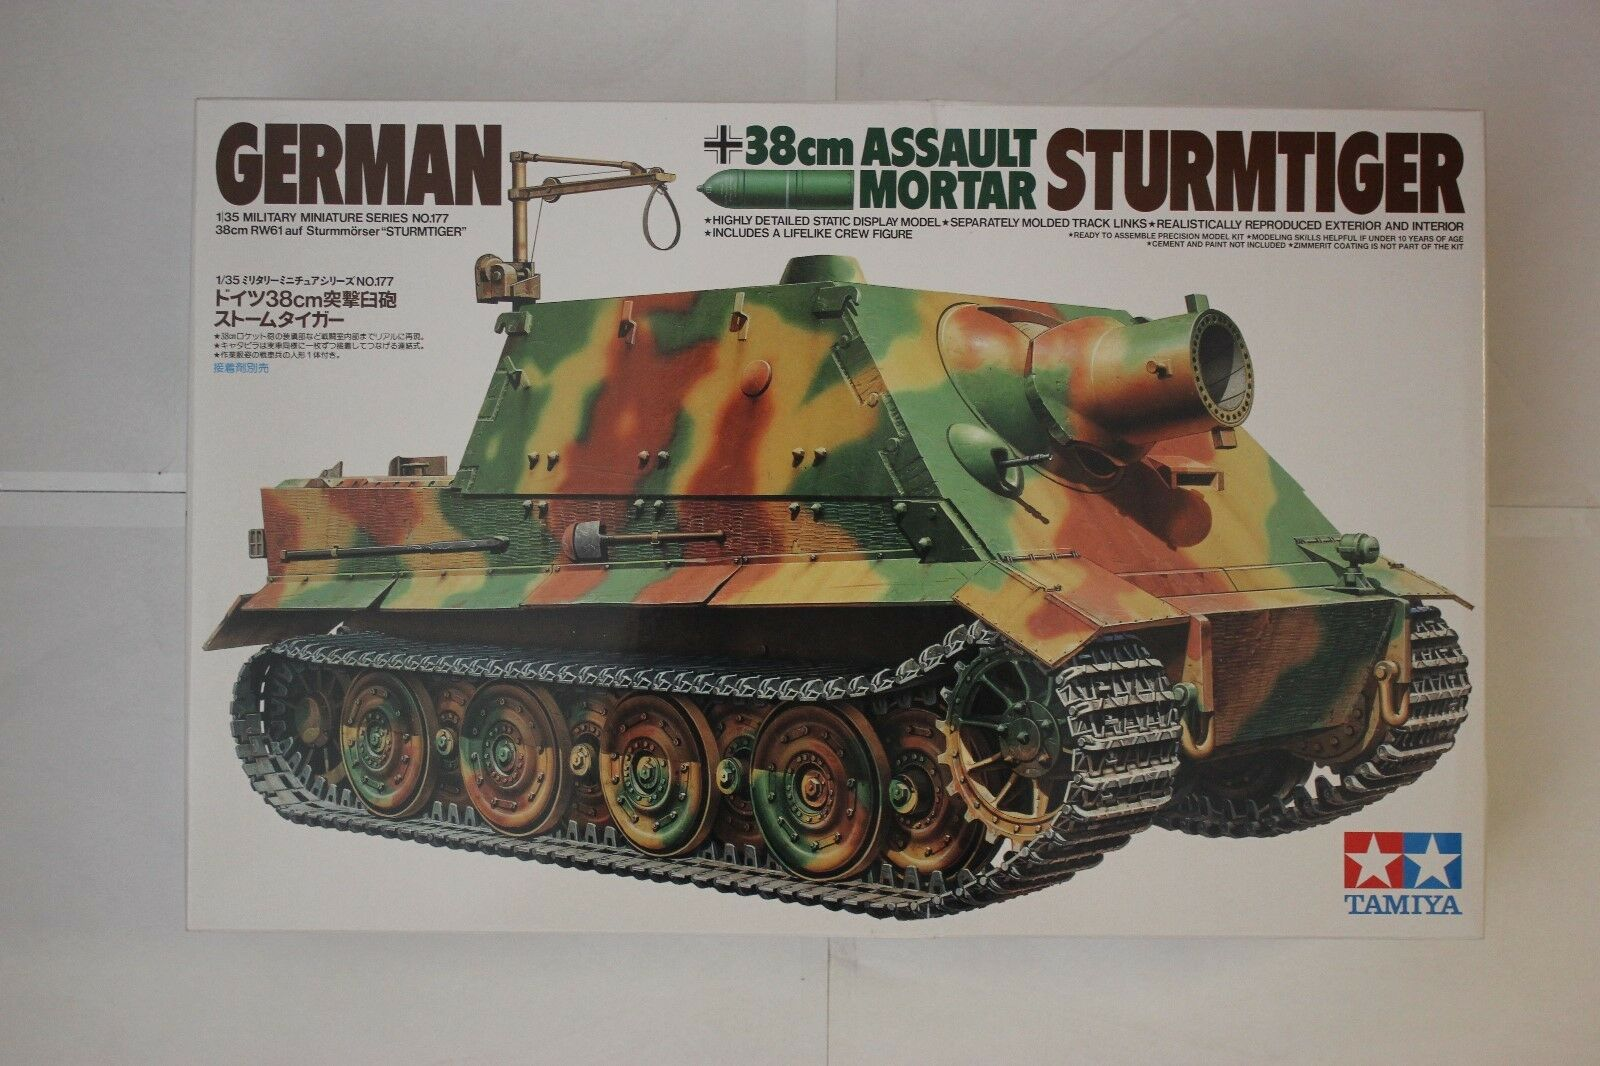 Tamiya 35177 German 38cm Assault Mortar STURMTIGER 1 35 Scale